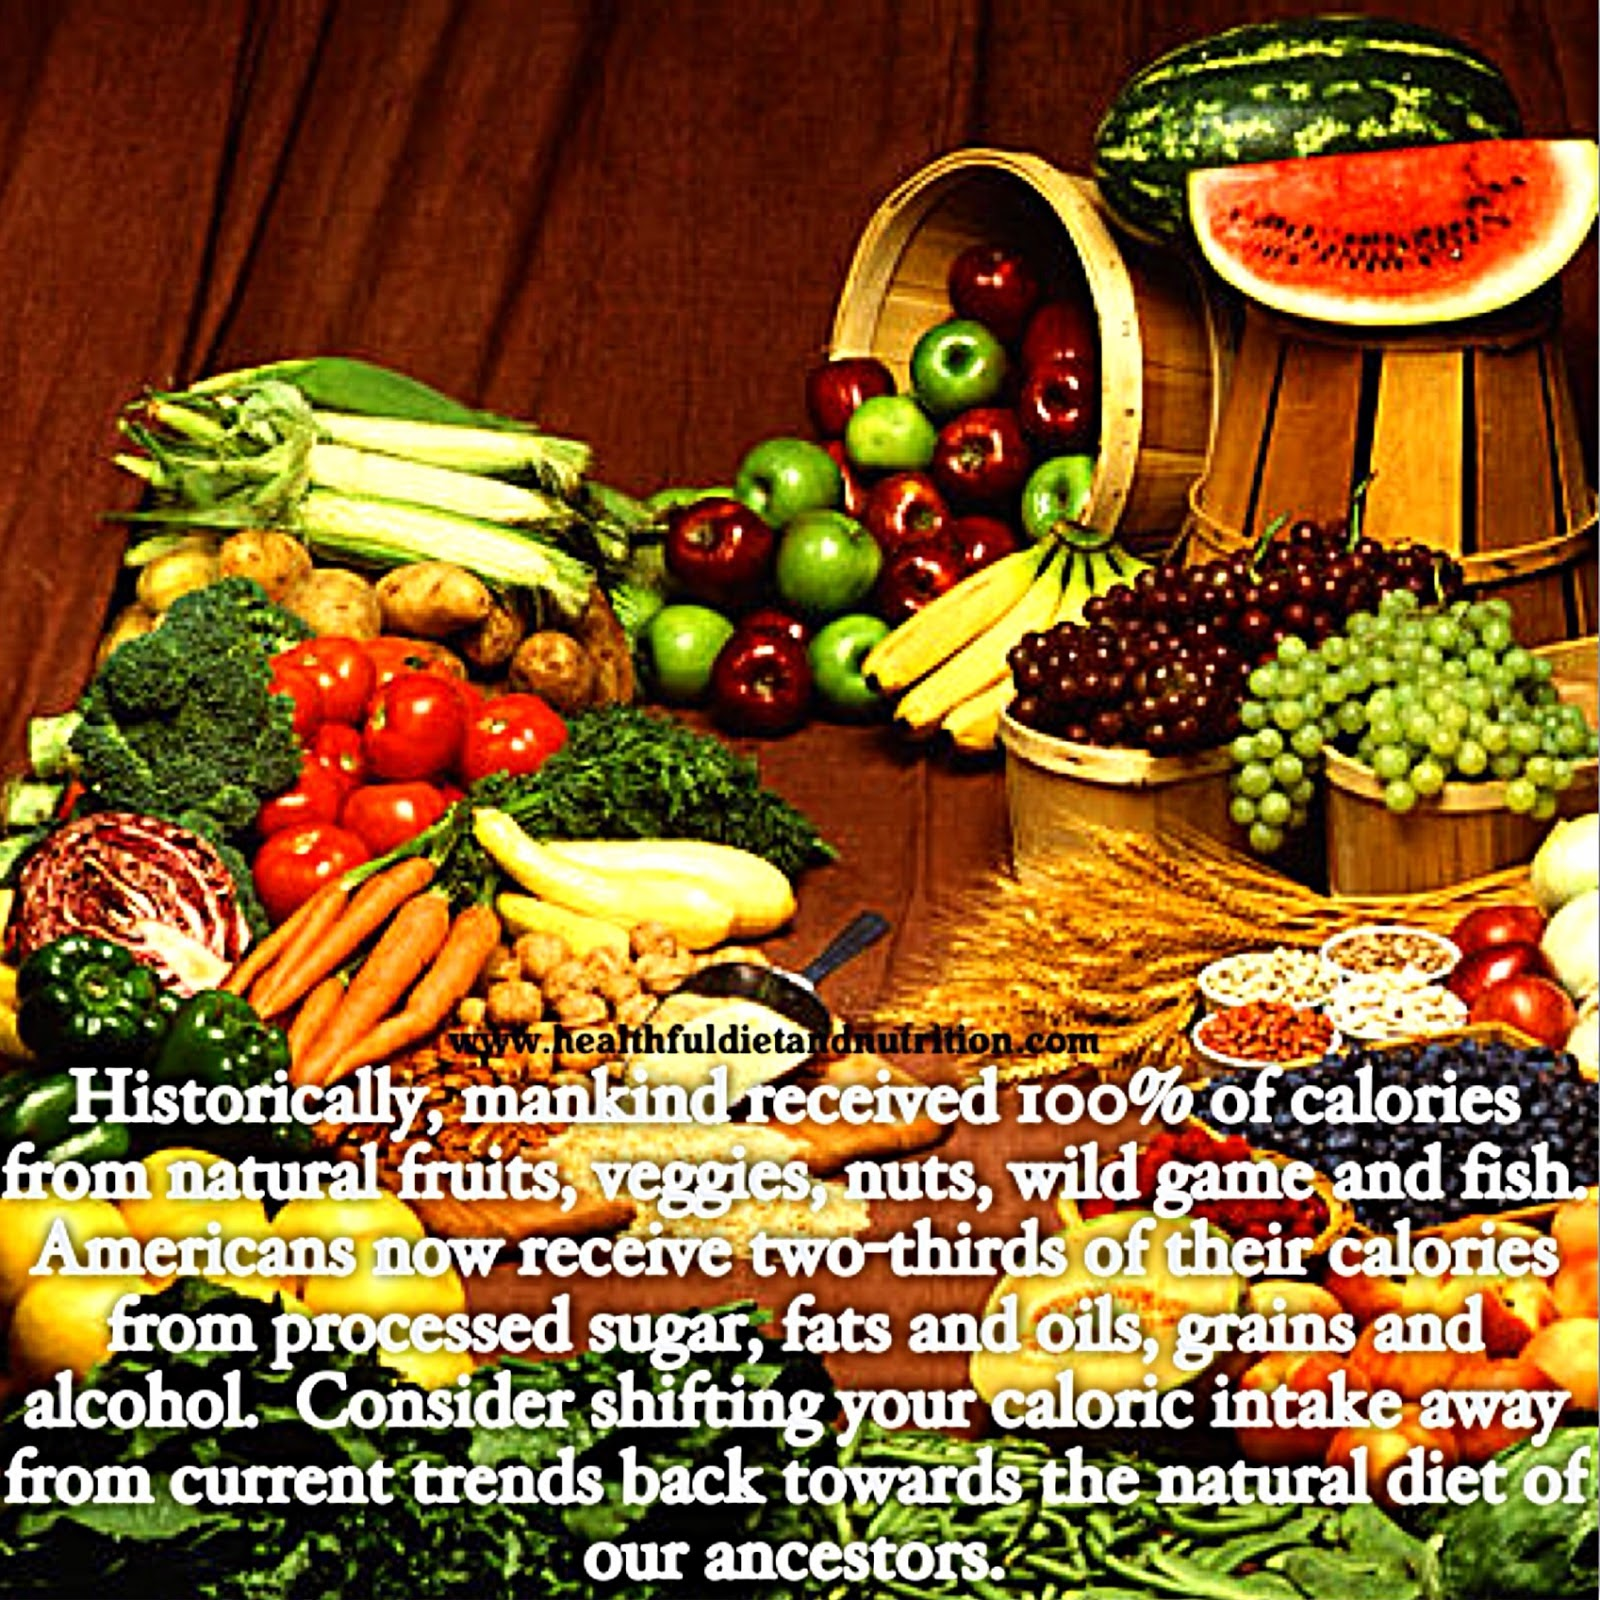 Consume a Natural Diet